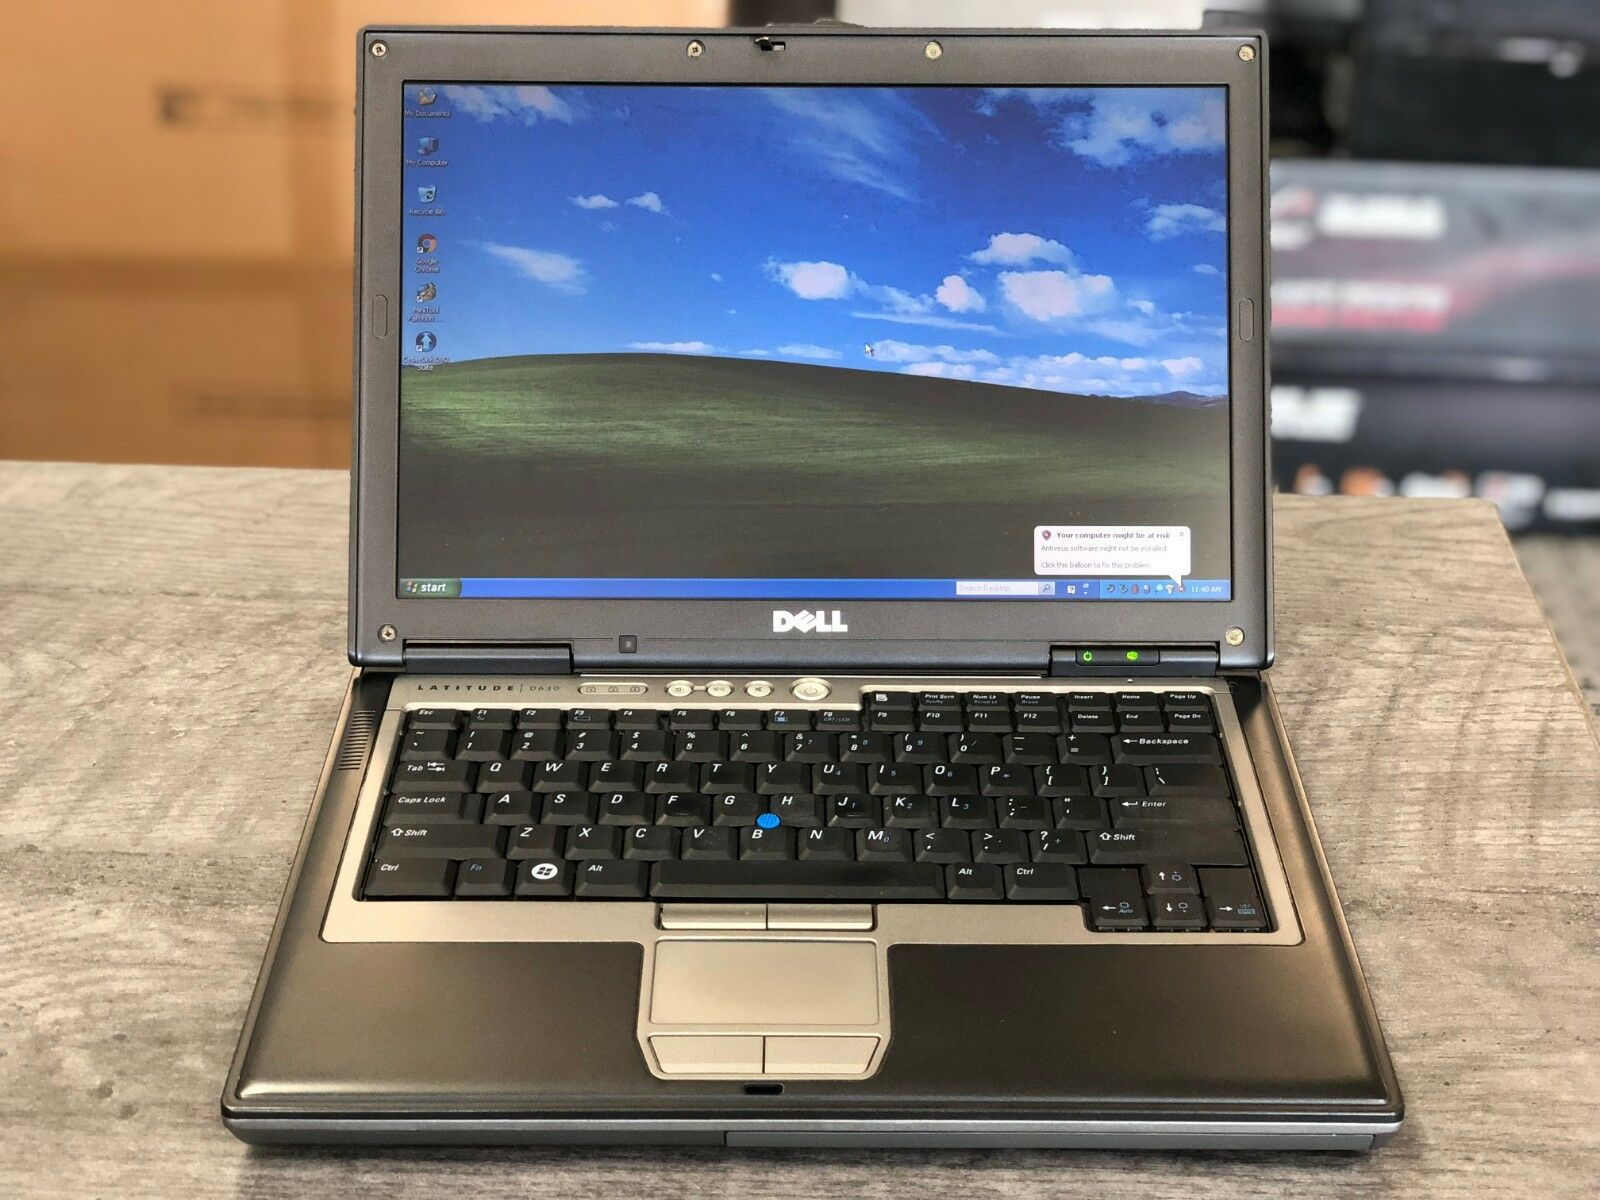 "Laptop Windows - Dell D630 D620 14"" 1.8GHz 160GB, 2GB RAM WINDOWS XP, WiFi DVD/CDRW RS232 Serial"